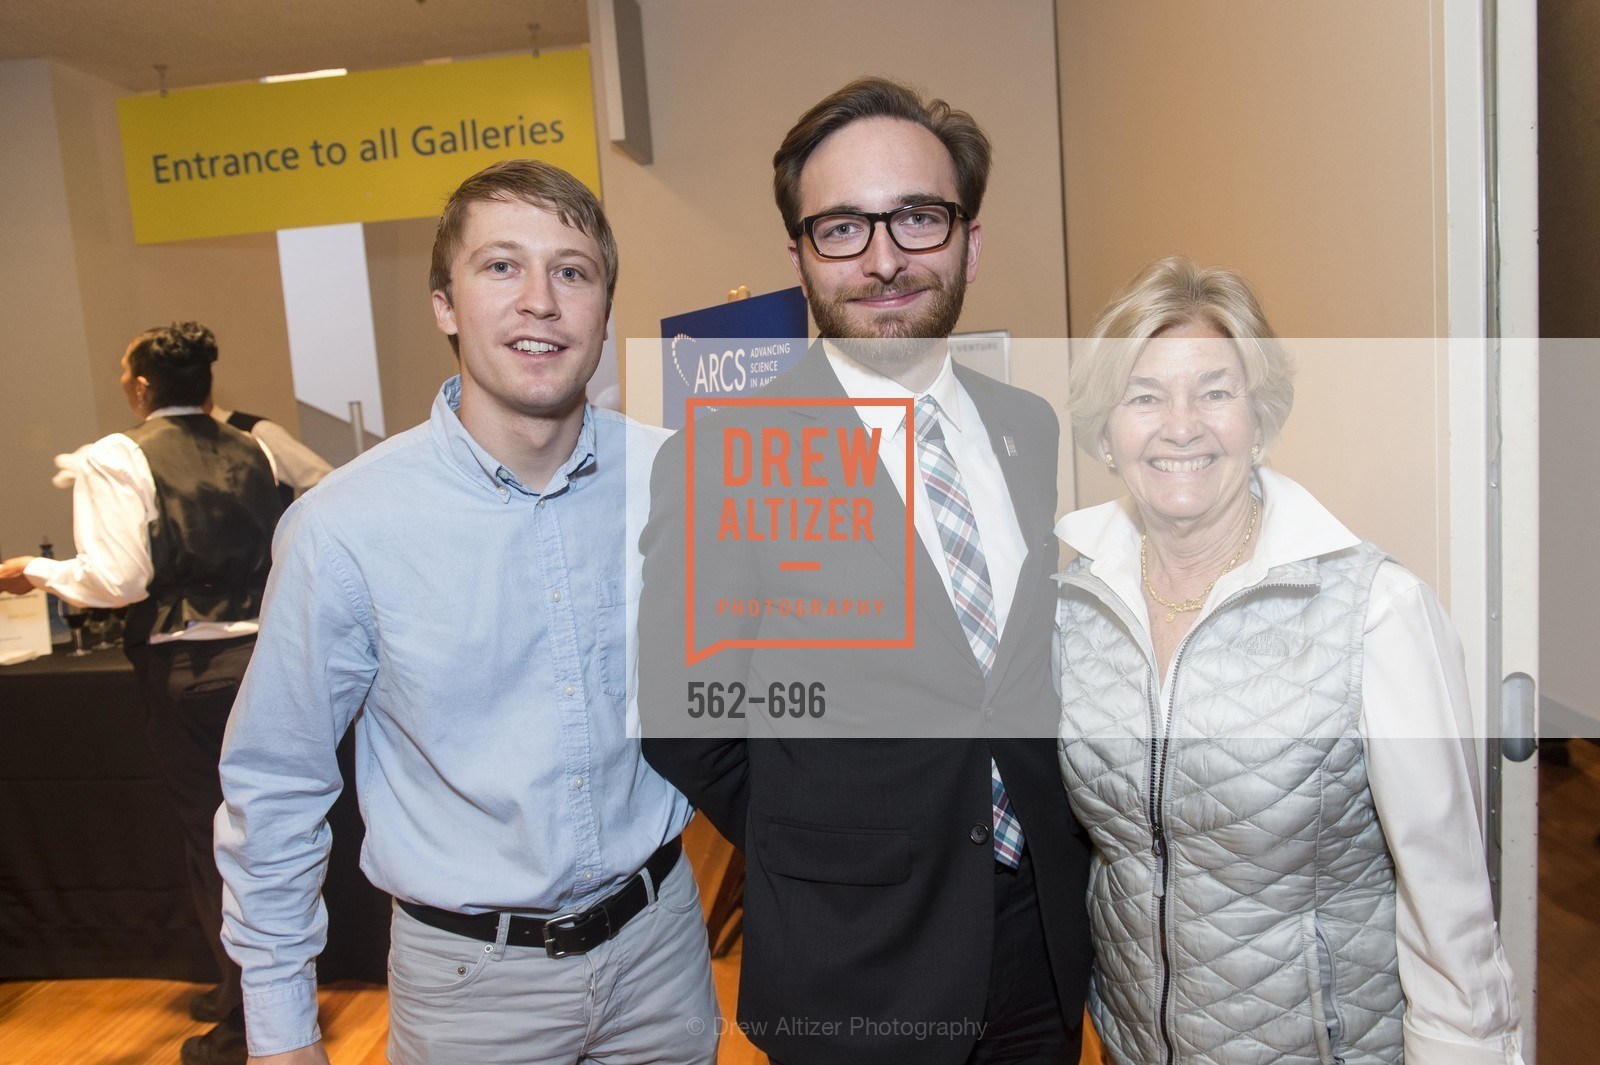 Cade Fox, Benjamin Gunning, Nancy Mueller Arcs, ARCS FOUNDATION Scholar Symposium, US, May 5th, 2015,Drew Altizer, Drew Altizer Photography, full-service agency, private events, San Francisco photographer, photographer california